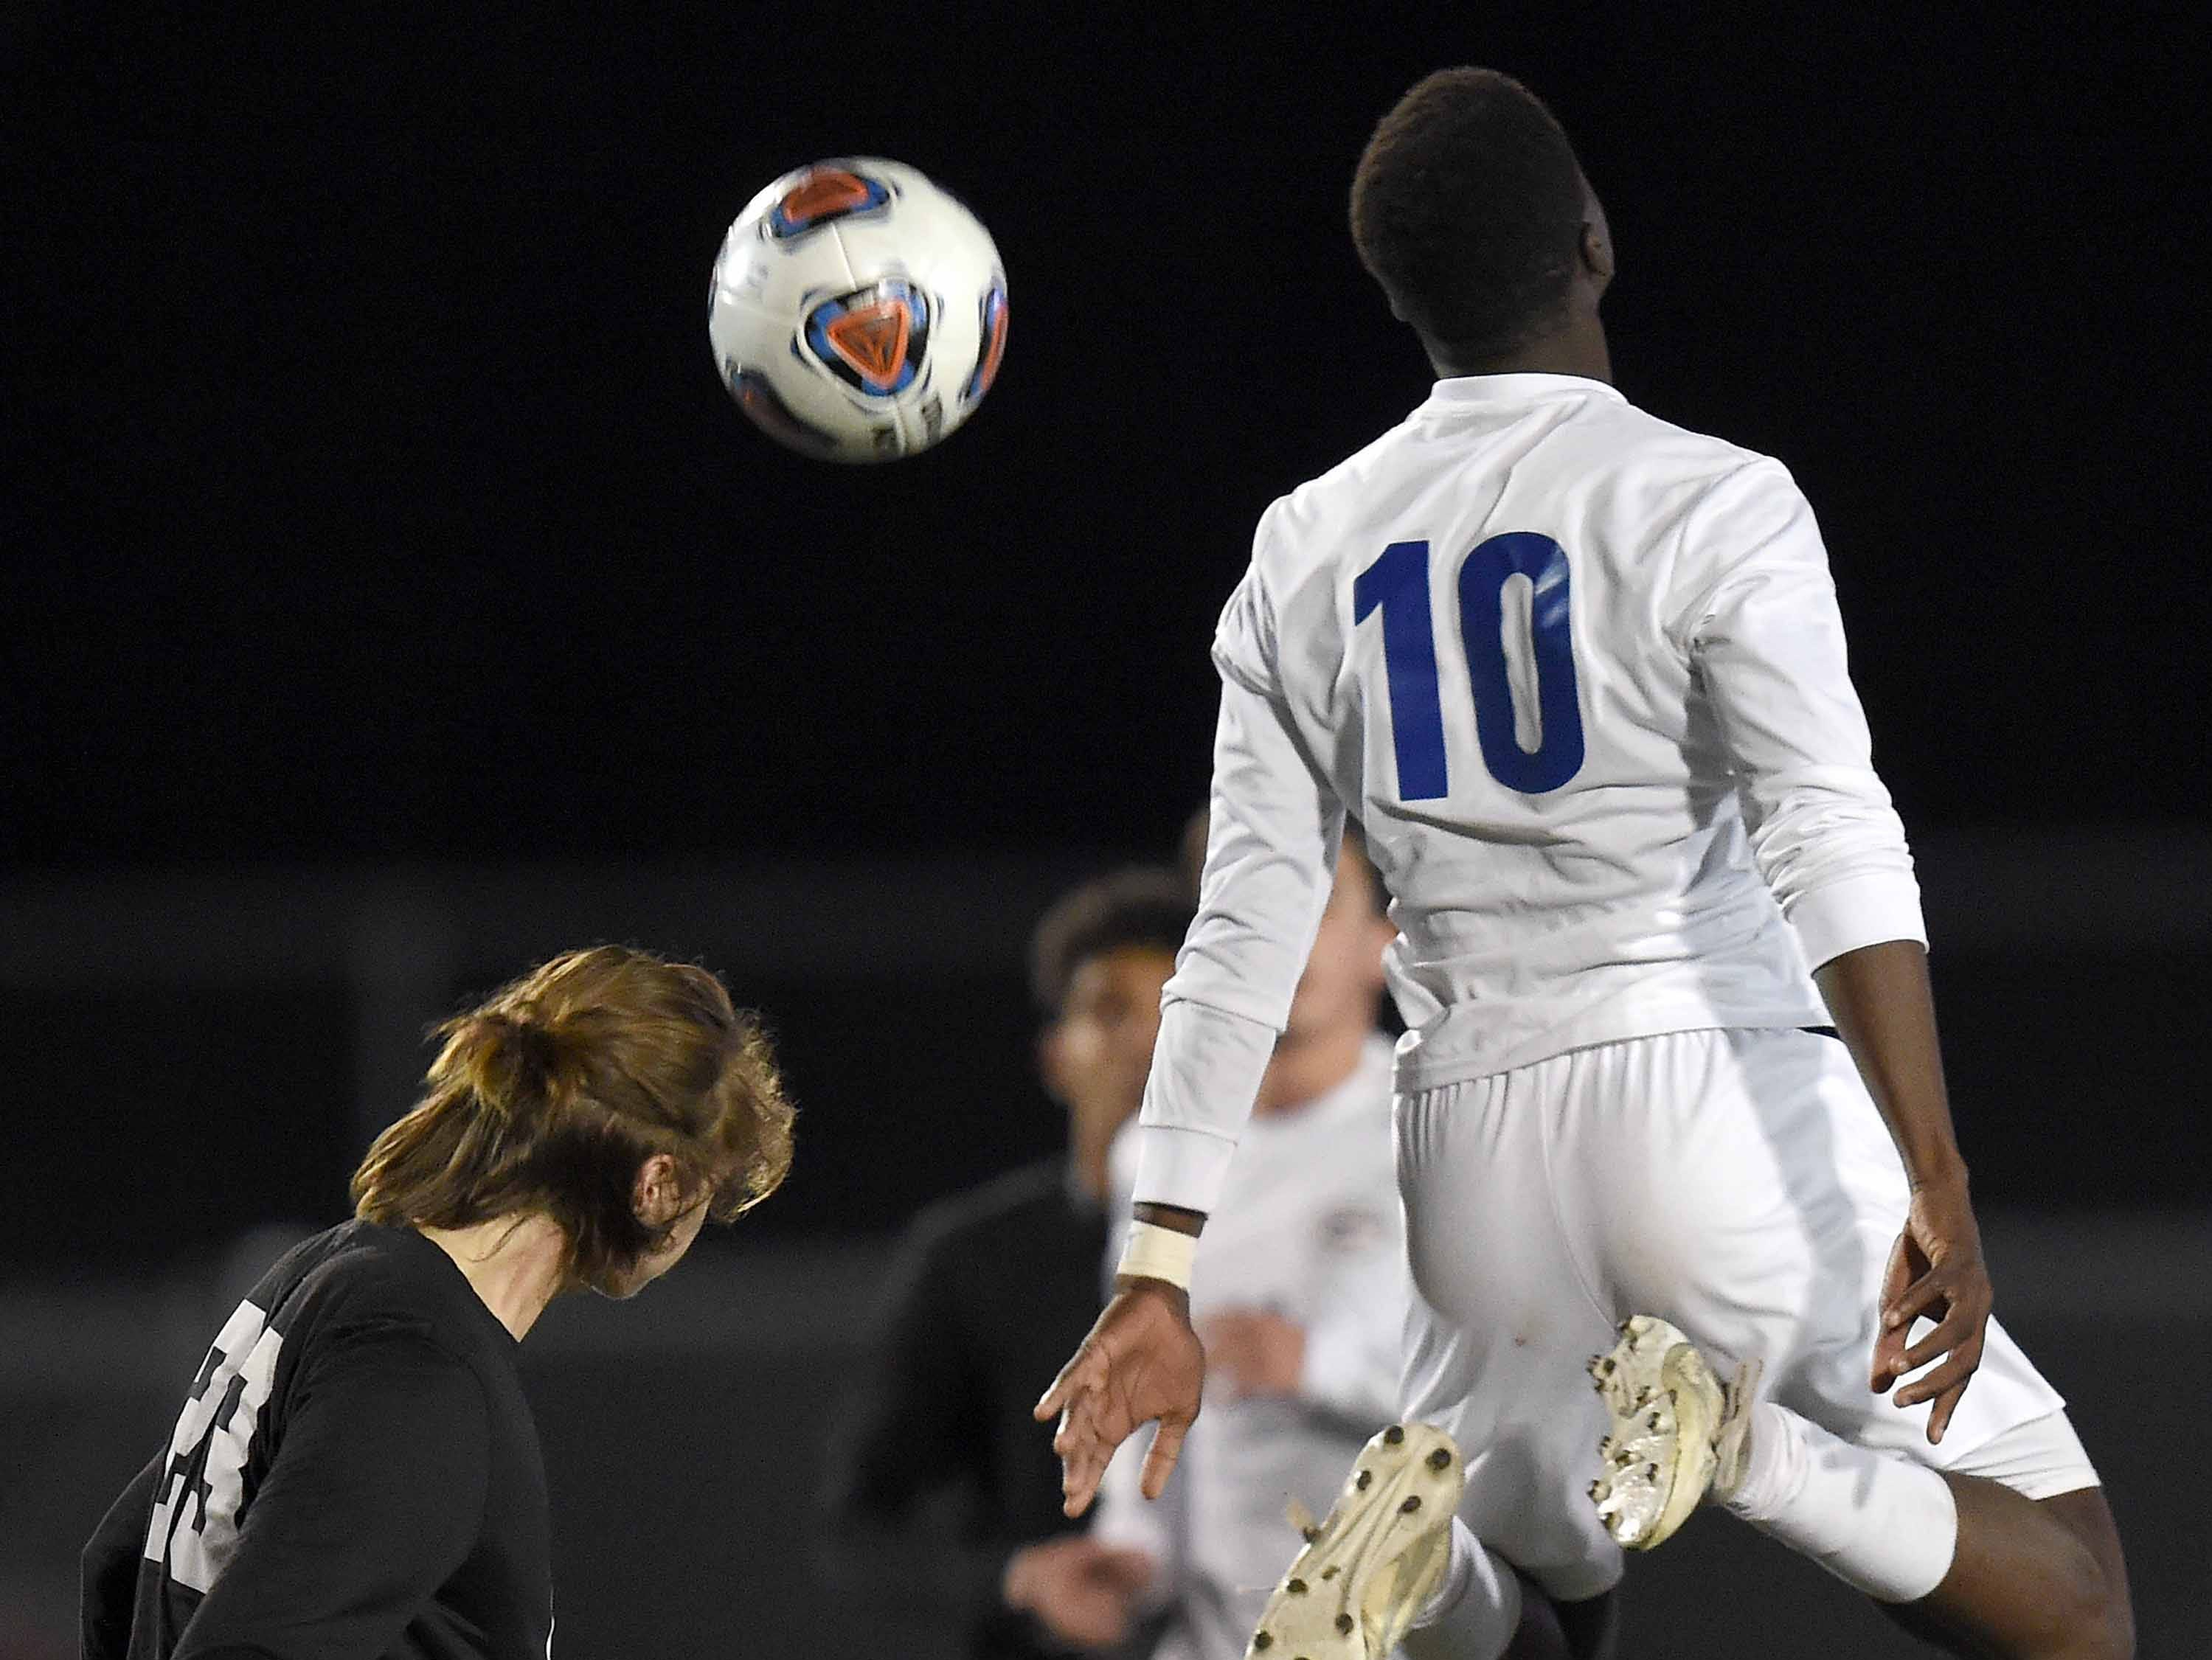 Northwest Rankin's Caden King (left) heads the ball past Gulfport's Mohamed Diallo (10) in the Class 6A state championship in the MHSAA BlueCross Blue Shield of Mississippi Soccer Classic on Saturday, February 9, 2019, at Ridgeland High School in Ridgeland, Miss.